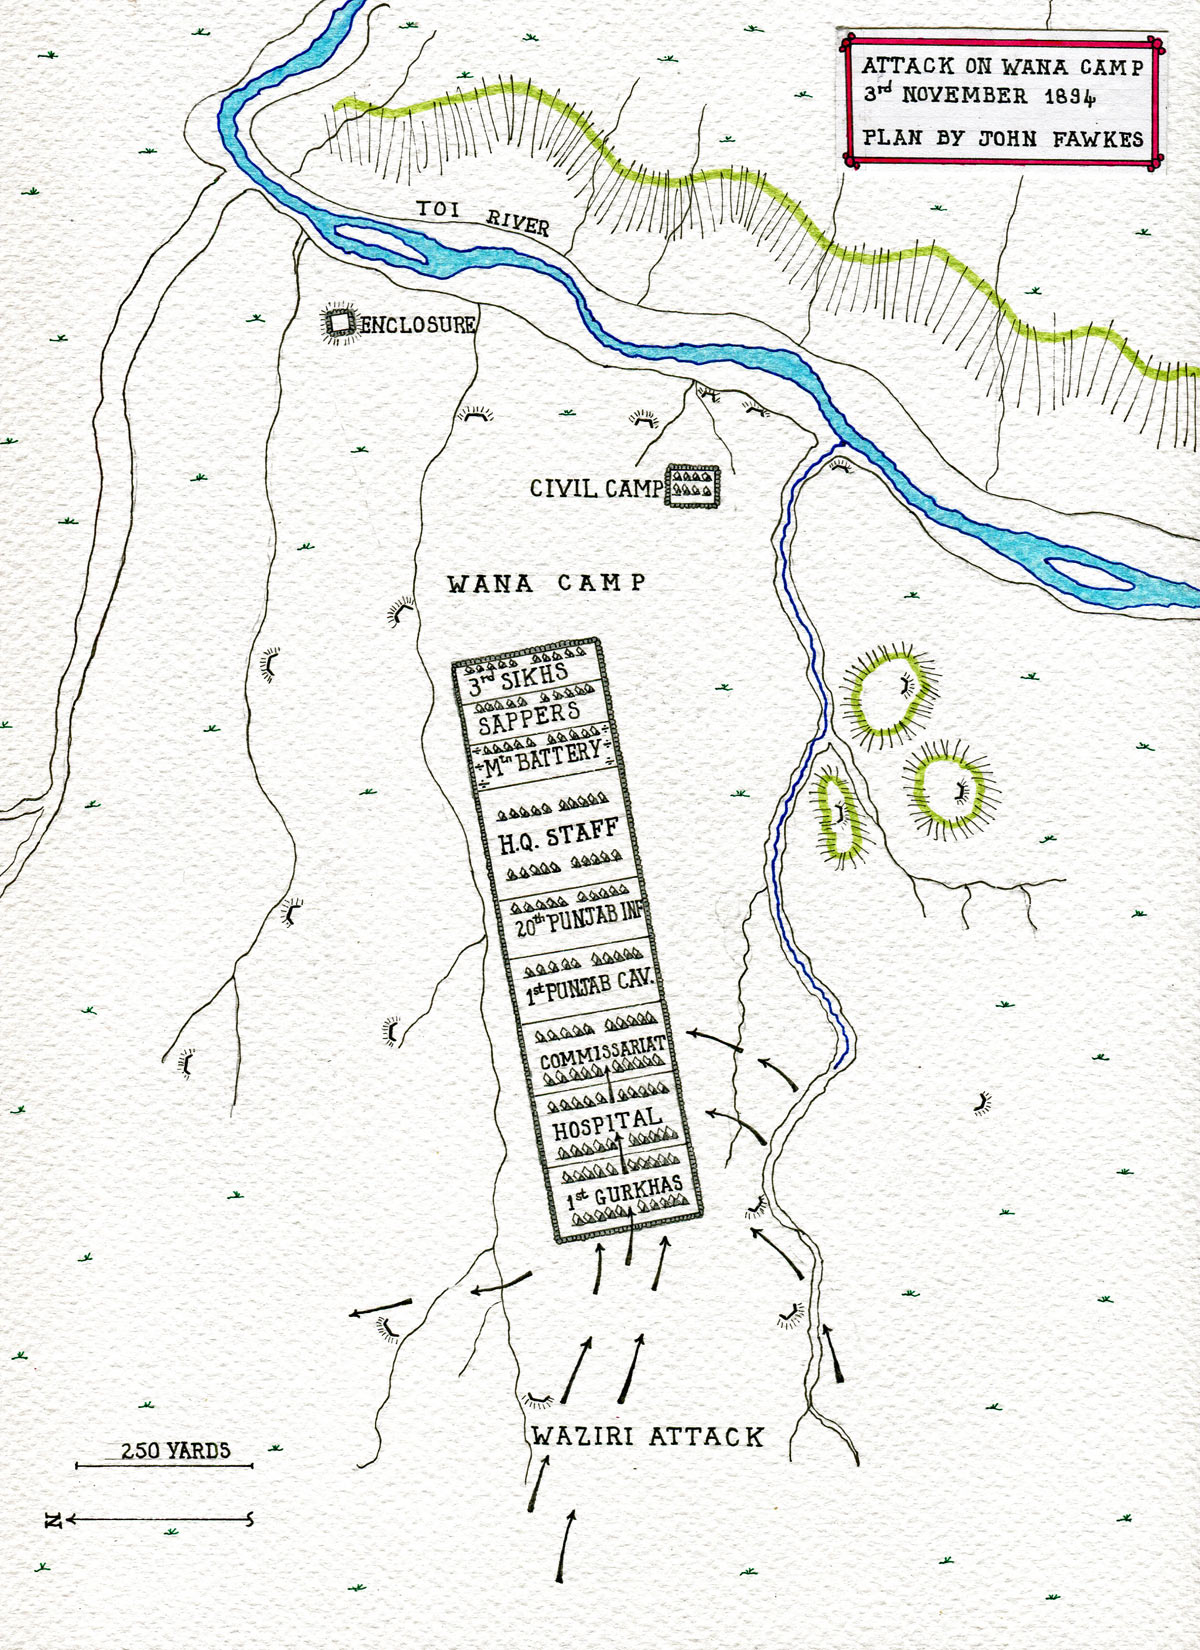 Plan of the Waziri attack on Wana Camp on 3rd November 1894: Waziristan campaign, 3rd November to March 1895, on the North-West Frontier of India: plan by John Fawkes